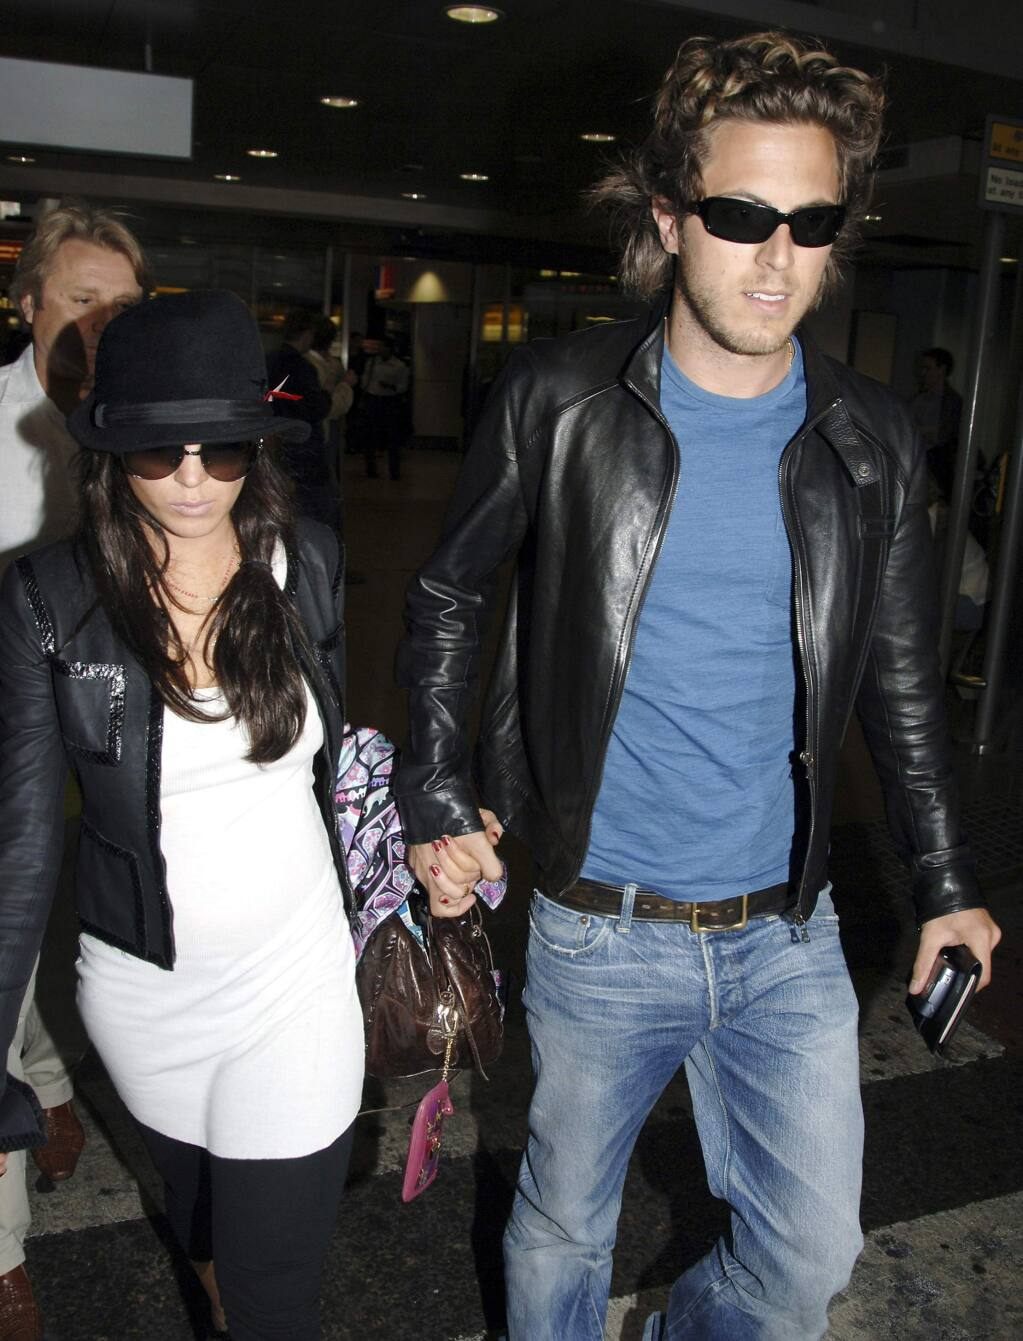 FILE - In this Thursday Sept. 7, 2006, file photo, Hollywood actress Lindsay Lohan, left, and boyfriend, Harry Morton arrive at London's Heathrow Airport from Venice, Italy. Harry Morton, a restaurant mogul who is the son of the Hard Rock Cafe chain co-founder and grandson of the Morton's The Steakhouse founder, has died. Pink Taco, a restaurant business Morton founded and previously owned, confirmed his death in a statement Sunday, Nov. 24, 2019. He was 38. (AP Photo/File)